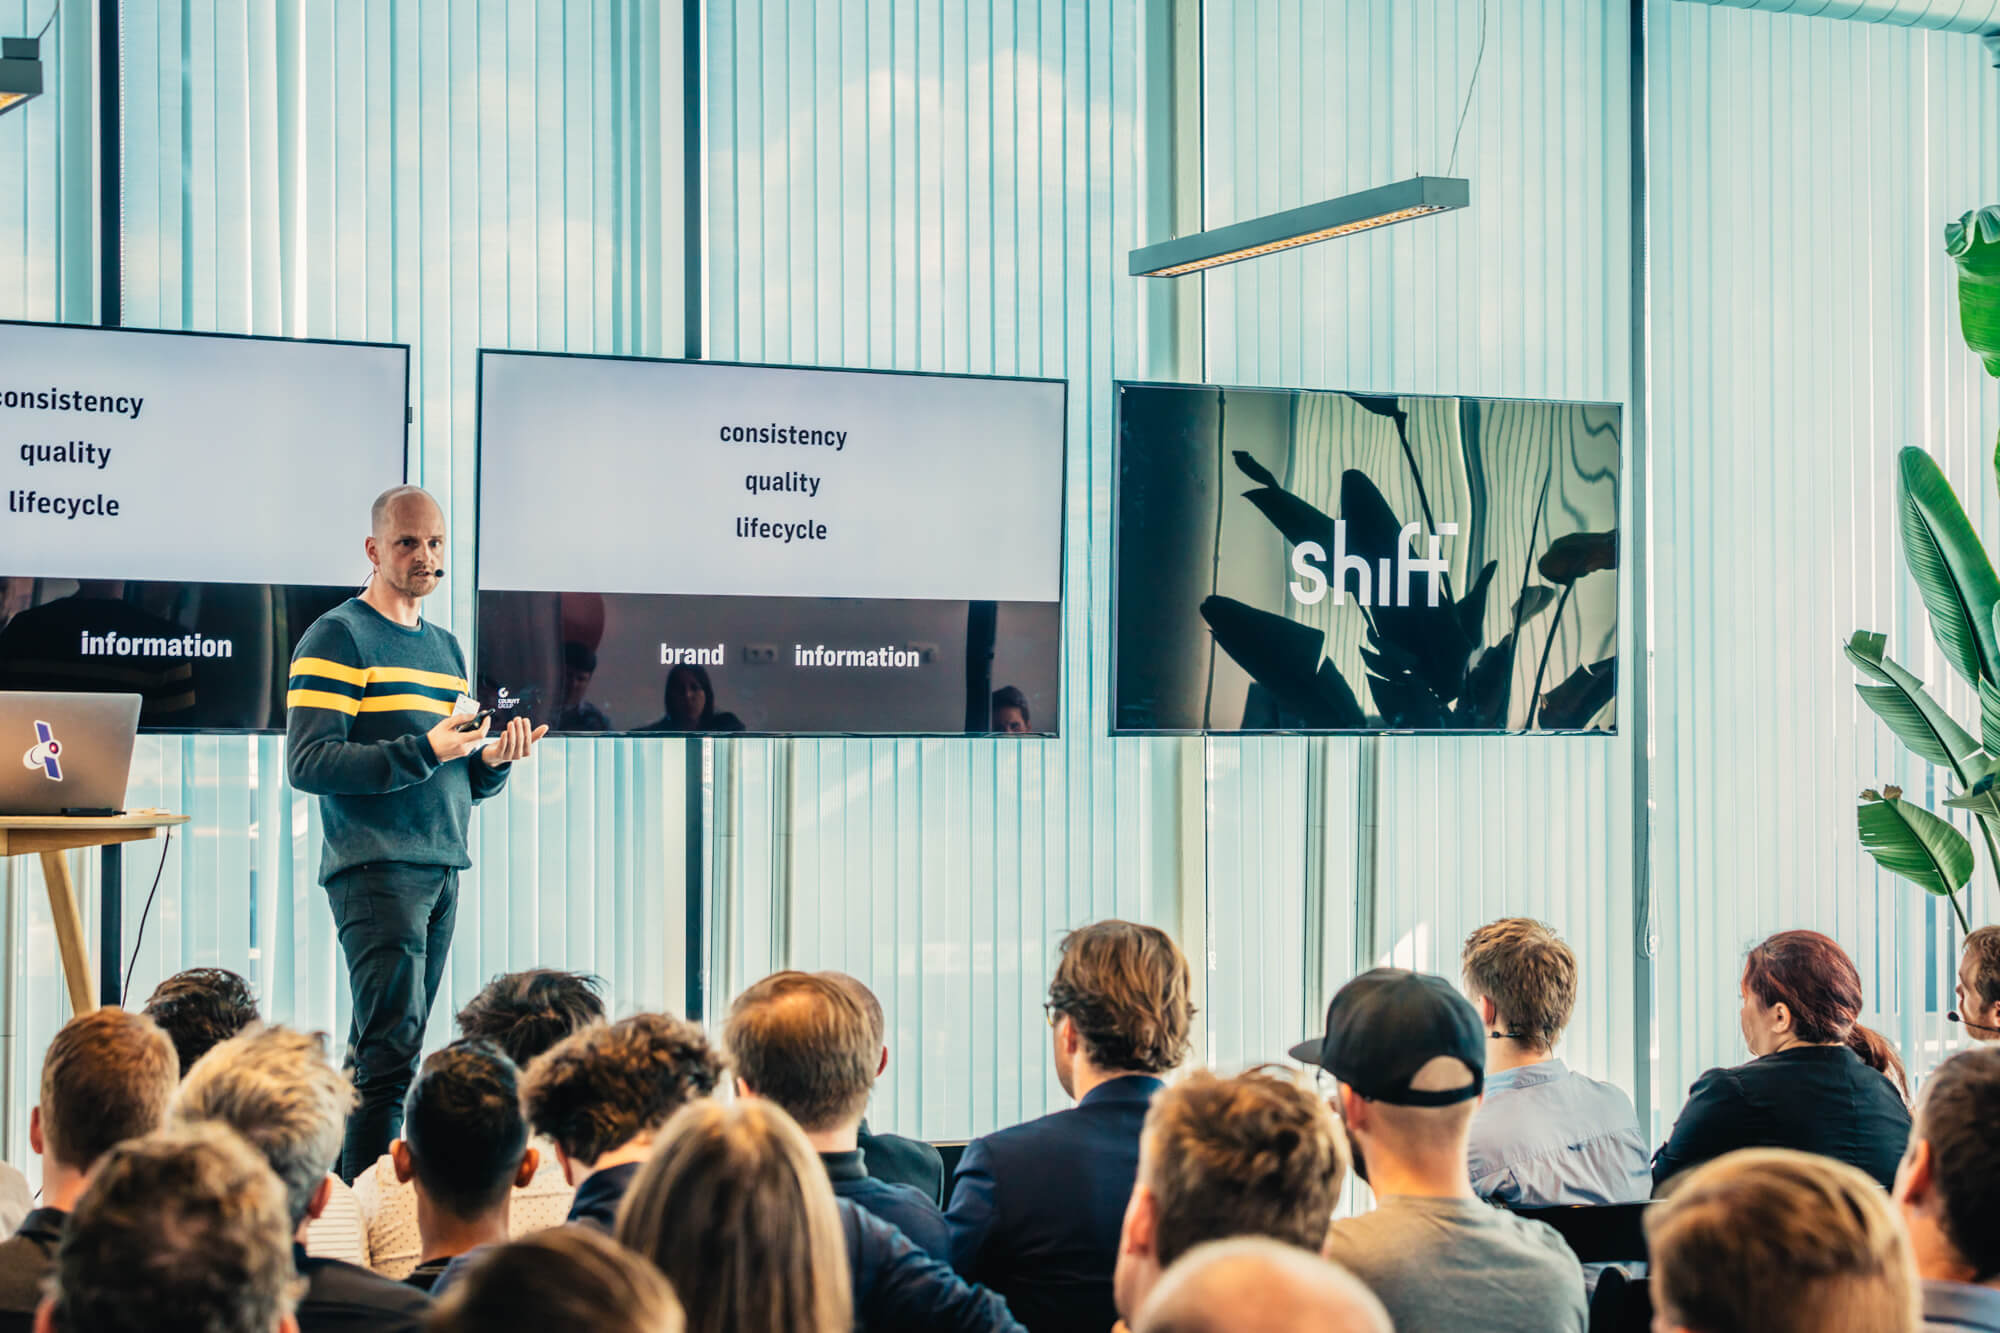 Wouter Walgraeve presenting about design during 'Shift'